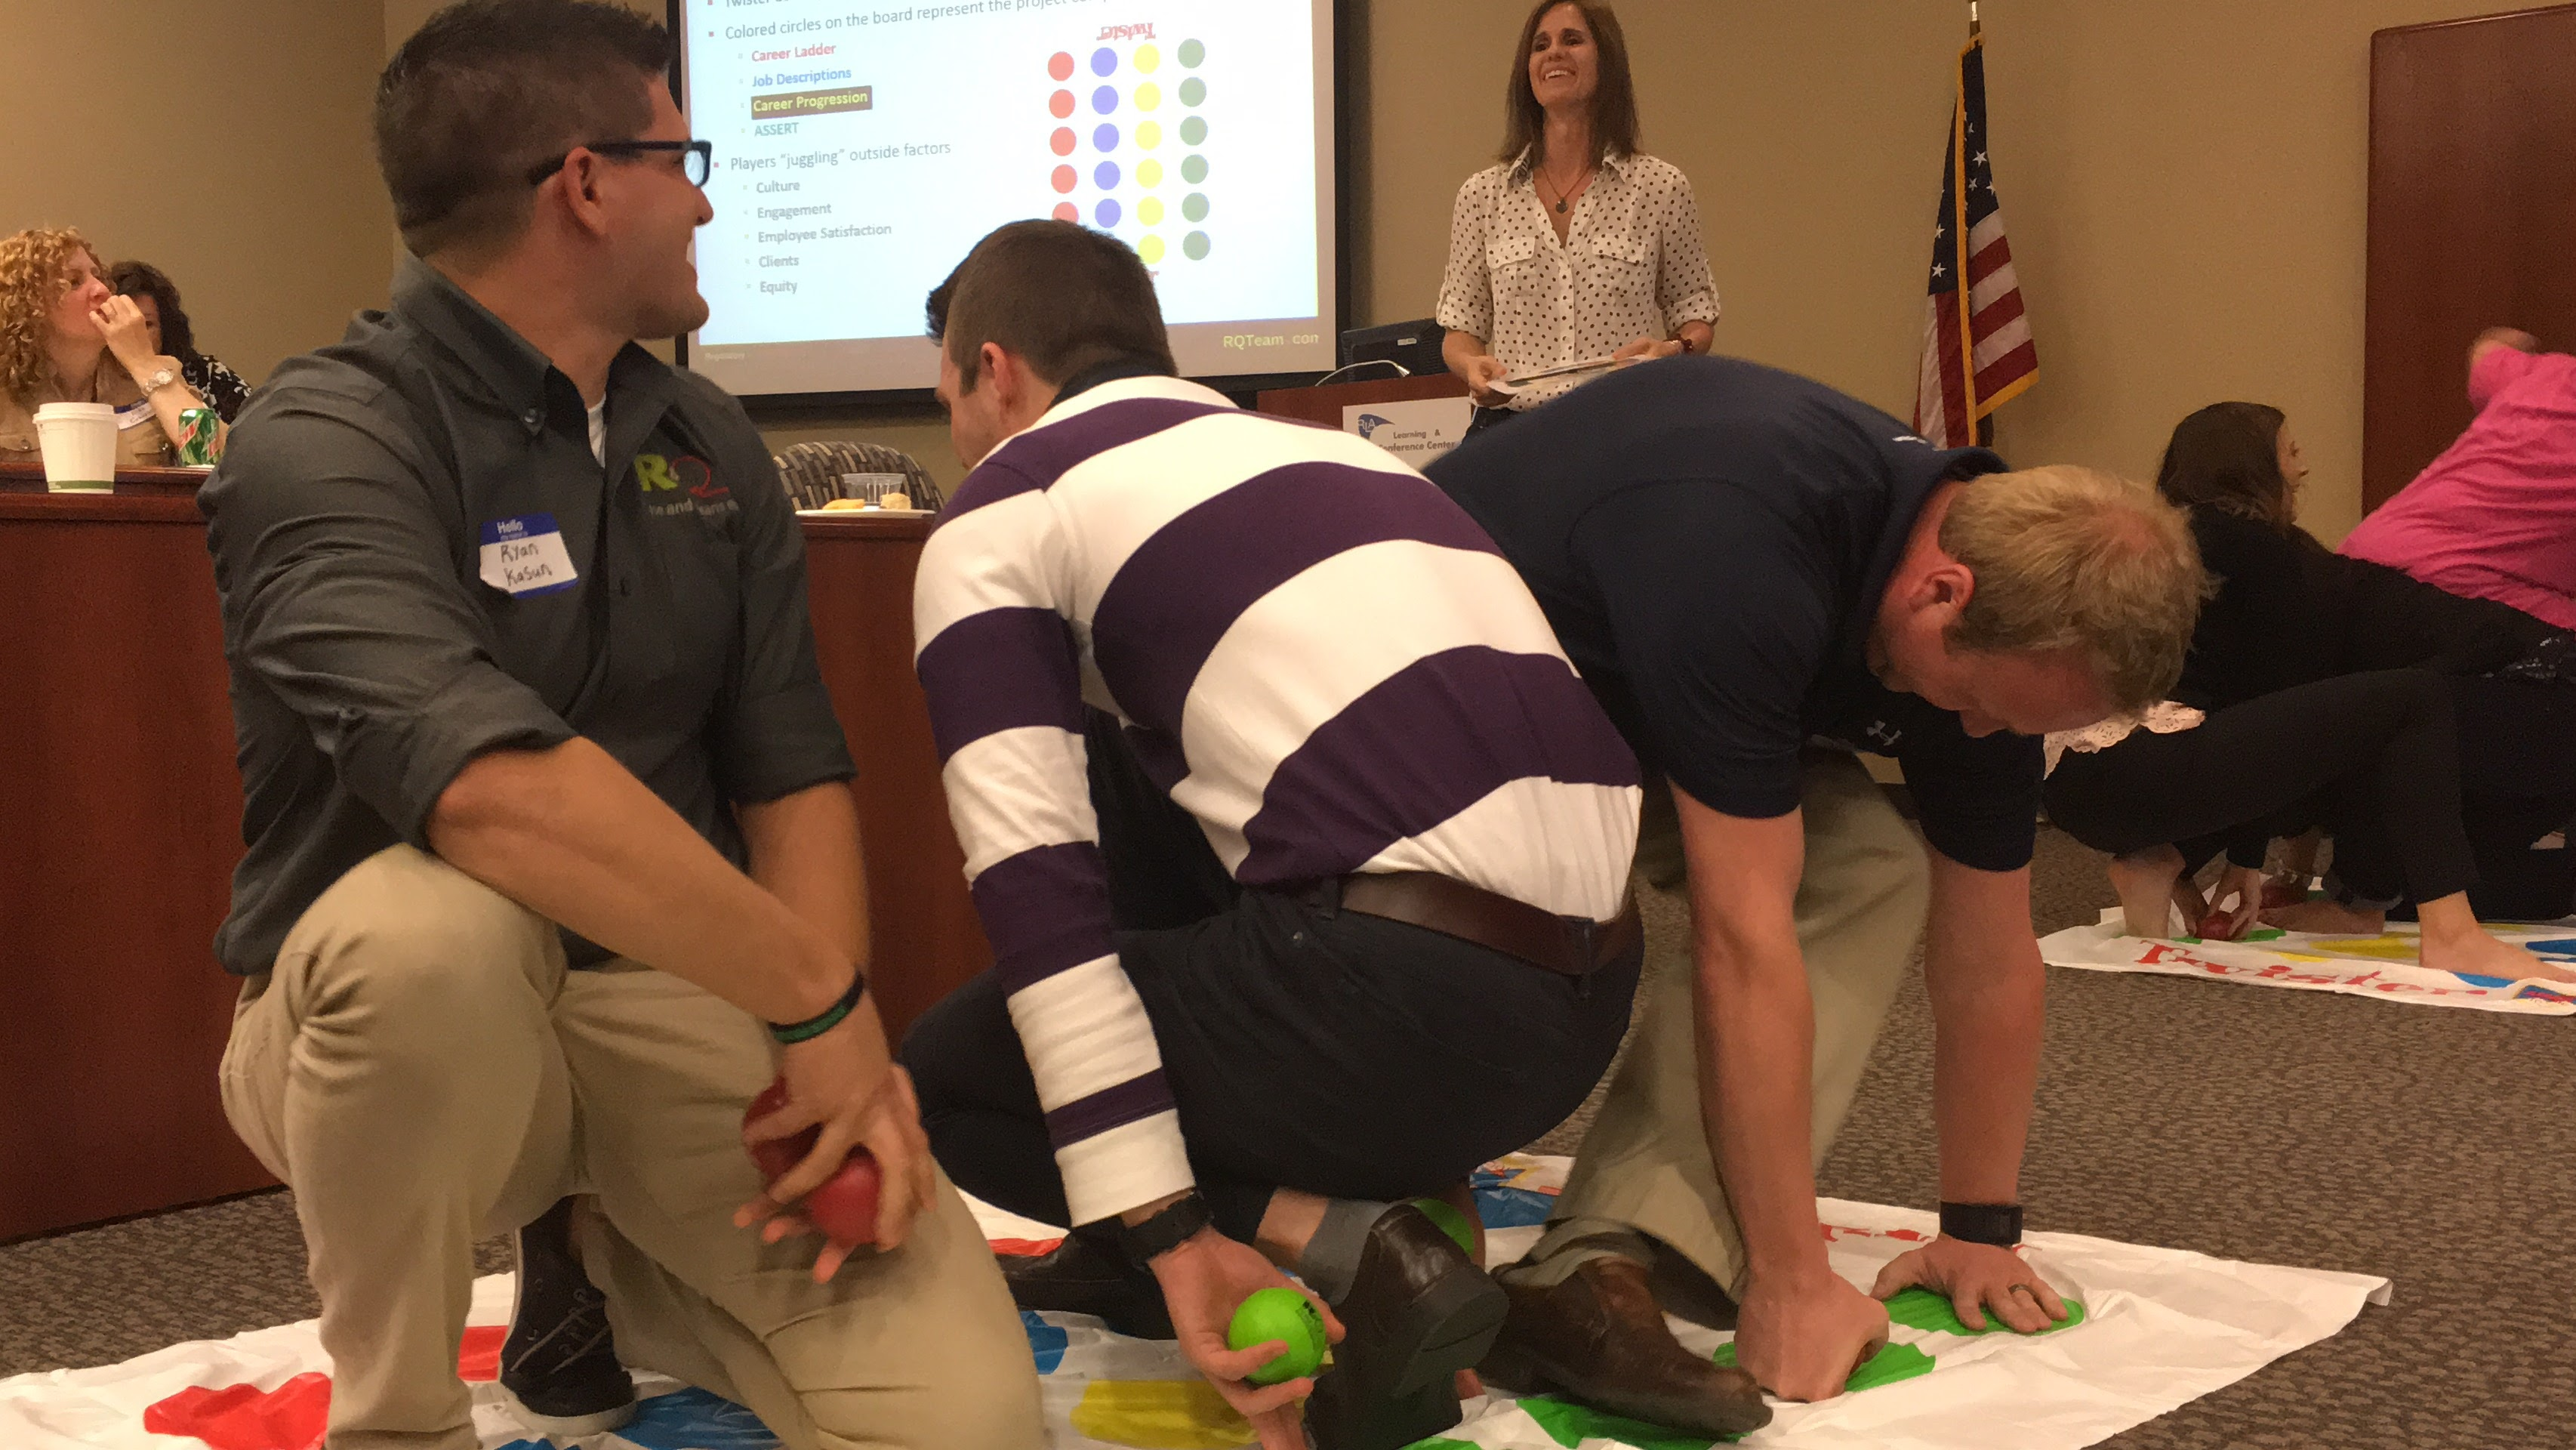 Employee Twister game